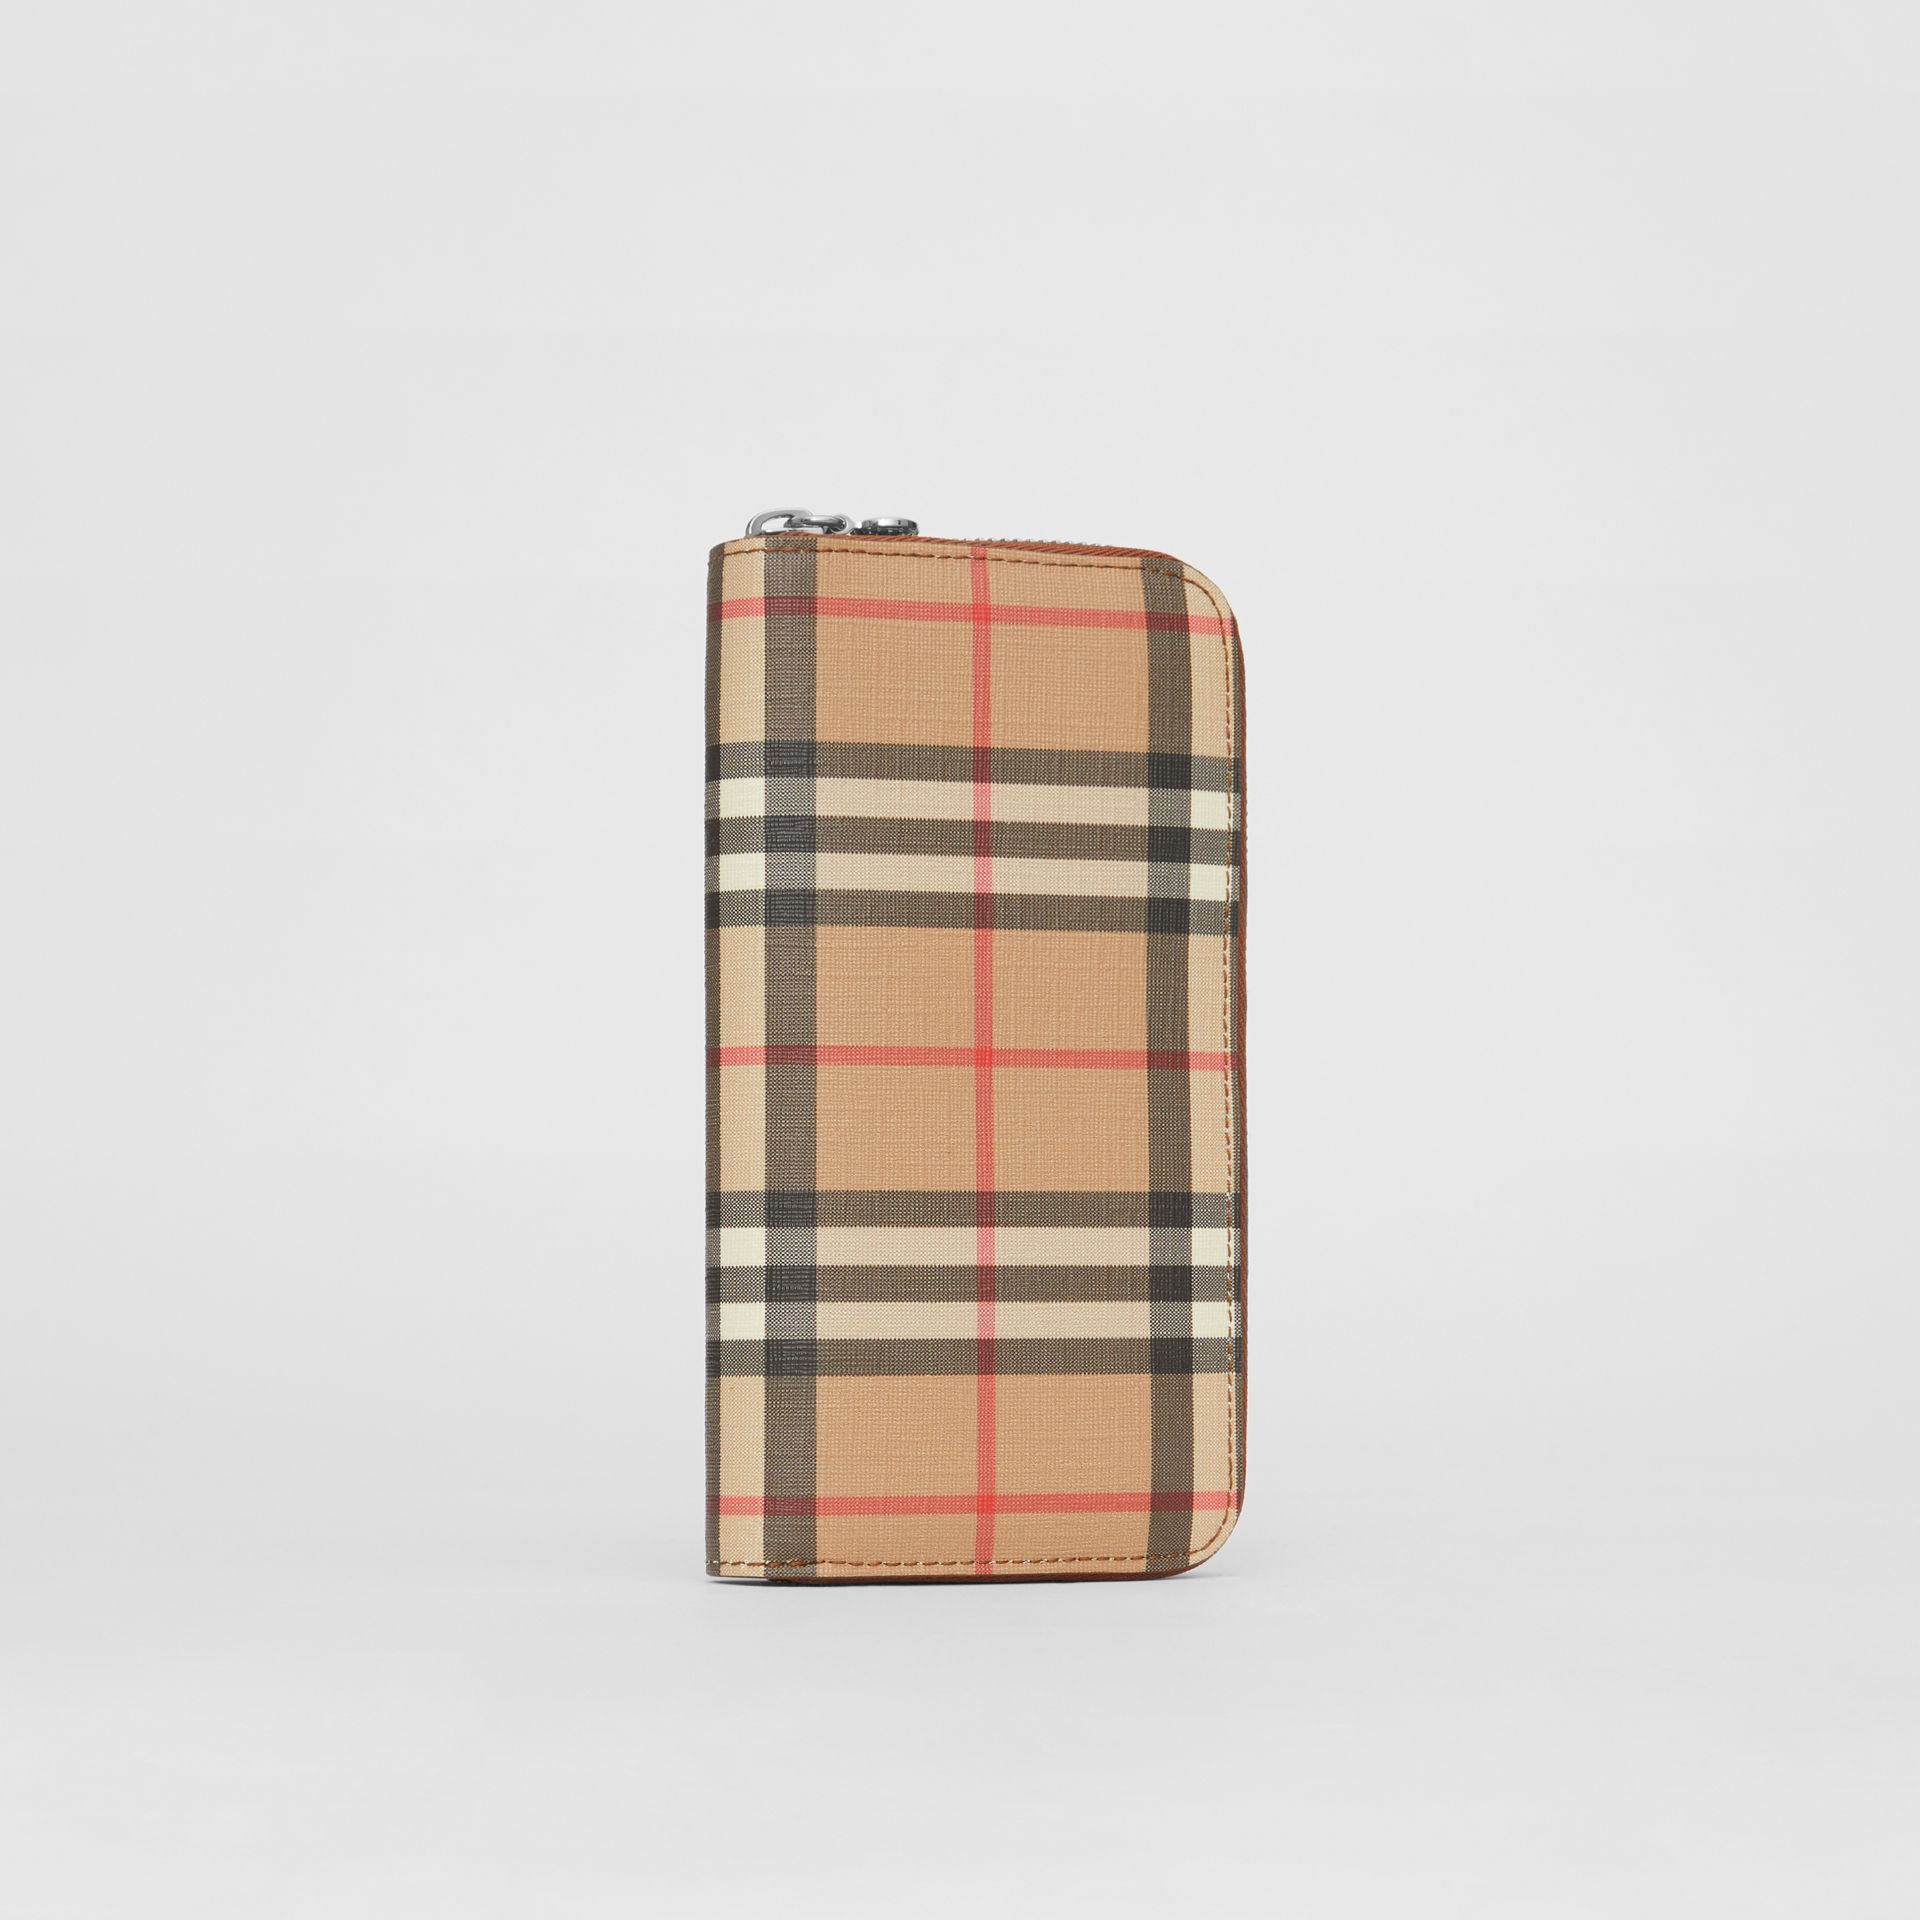 Vintage Check and Leather Ziparound Wallet in Malt Brown - Women | Burberry - gallery image 3